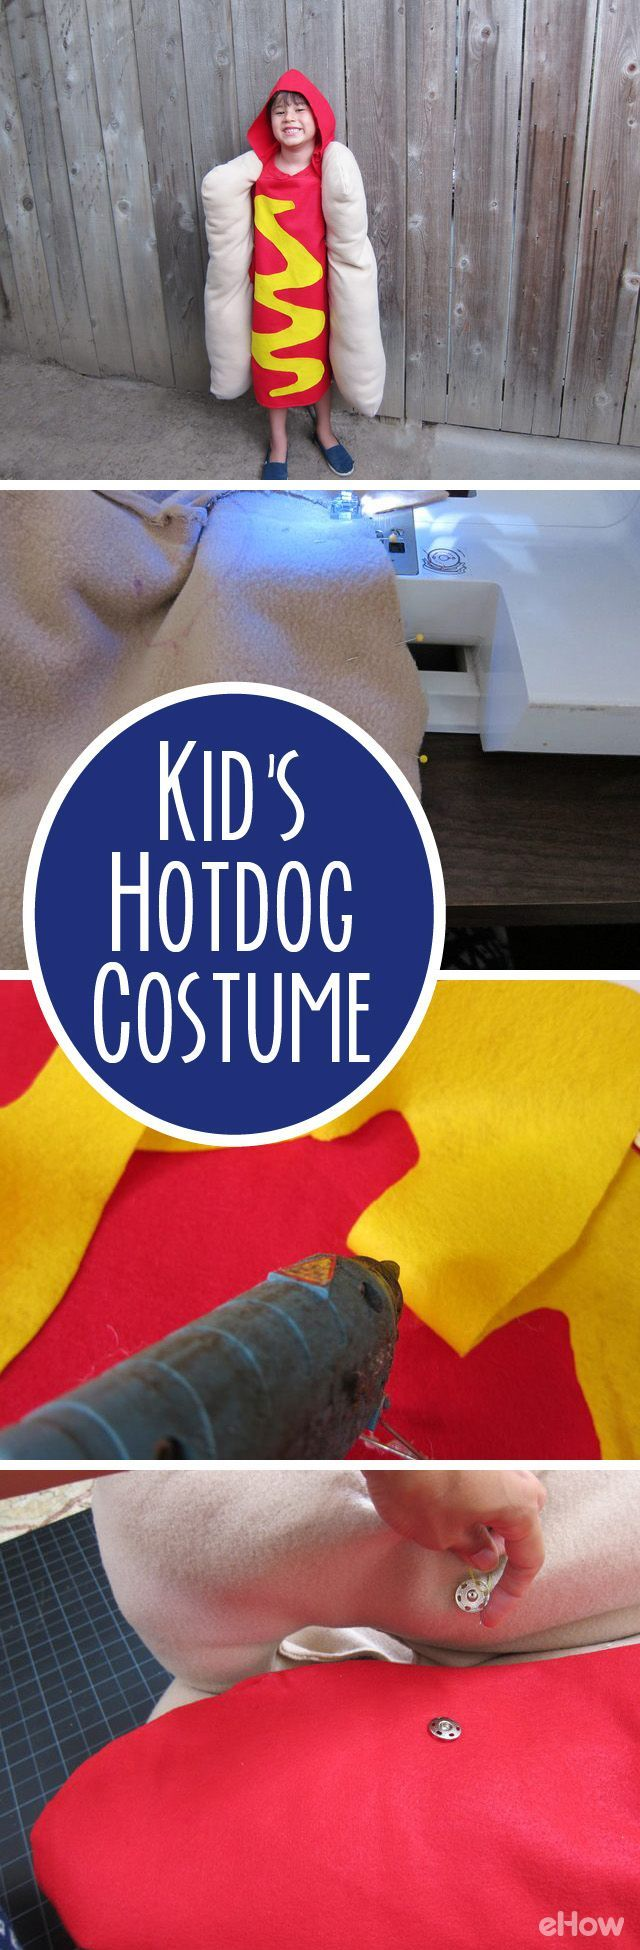 How cute is this hot dog costume for kids! Imagining the whole family dressed up as the hot dog and condiments just makes us laugh out loud. It's super easy to make youself. Grab the instructions here: http://www.ehow.com/how_2100273_make-hot-dog-costume.html?utm_source=pinterest.com&utm_medium=referral&utm_content=freestyle&utm_campaign=fanpage